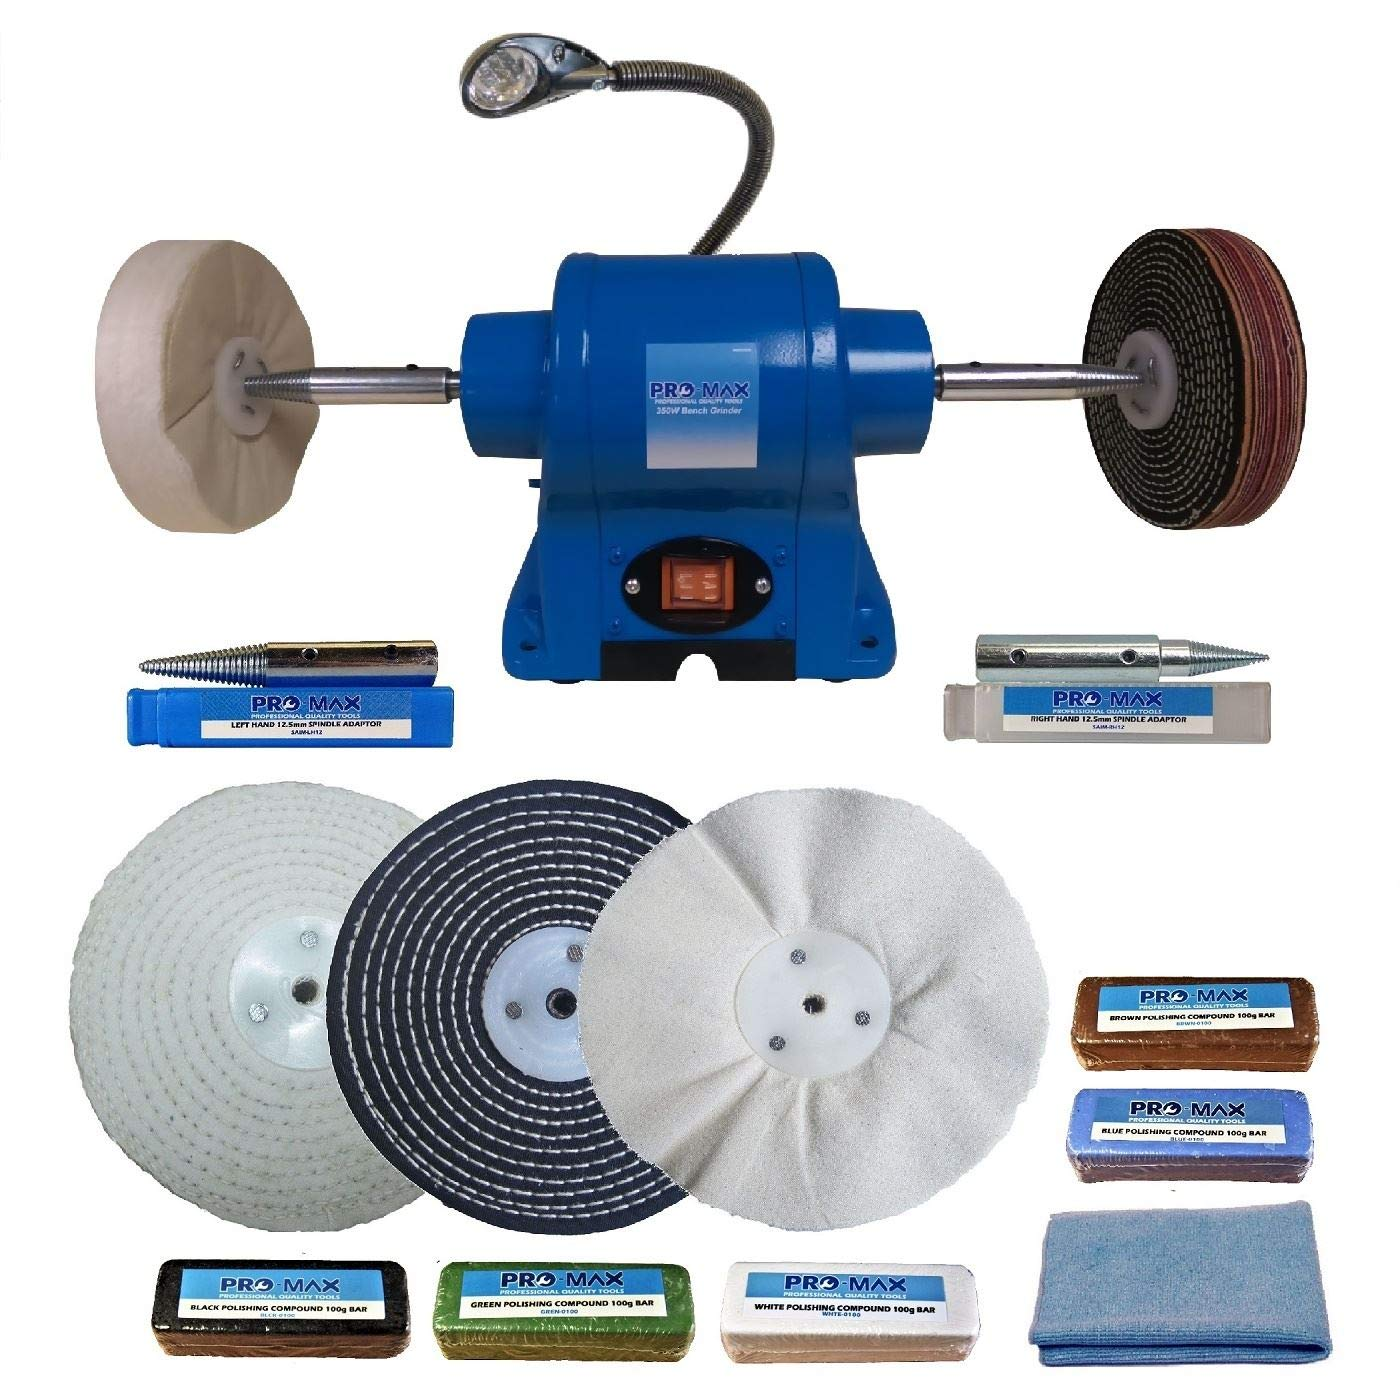 6' Bench Grinder 350W And 6' Metal Polishing Kit Machine - Pro-Max Pro-Max Quality Tools & Accessories